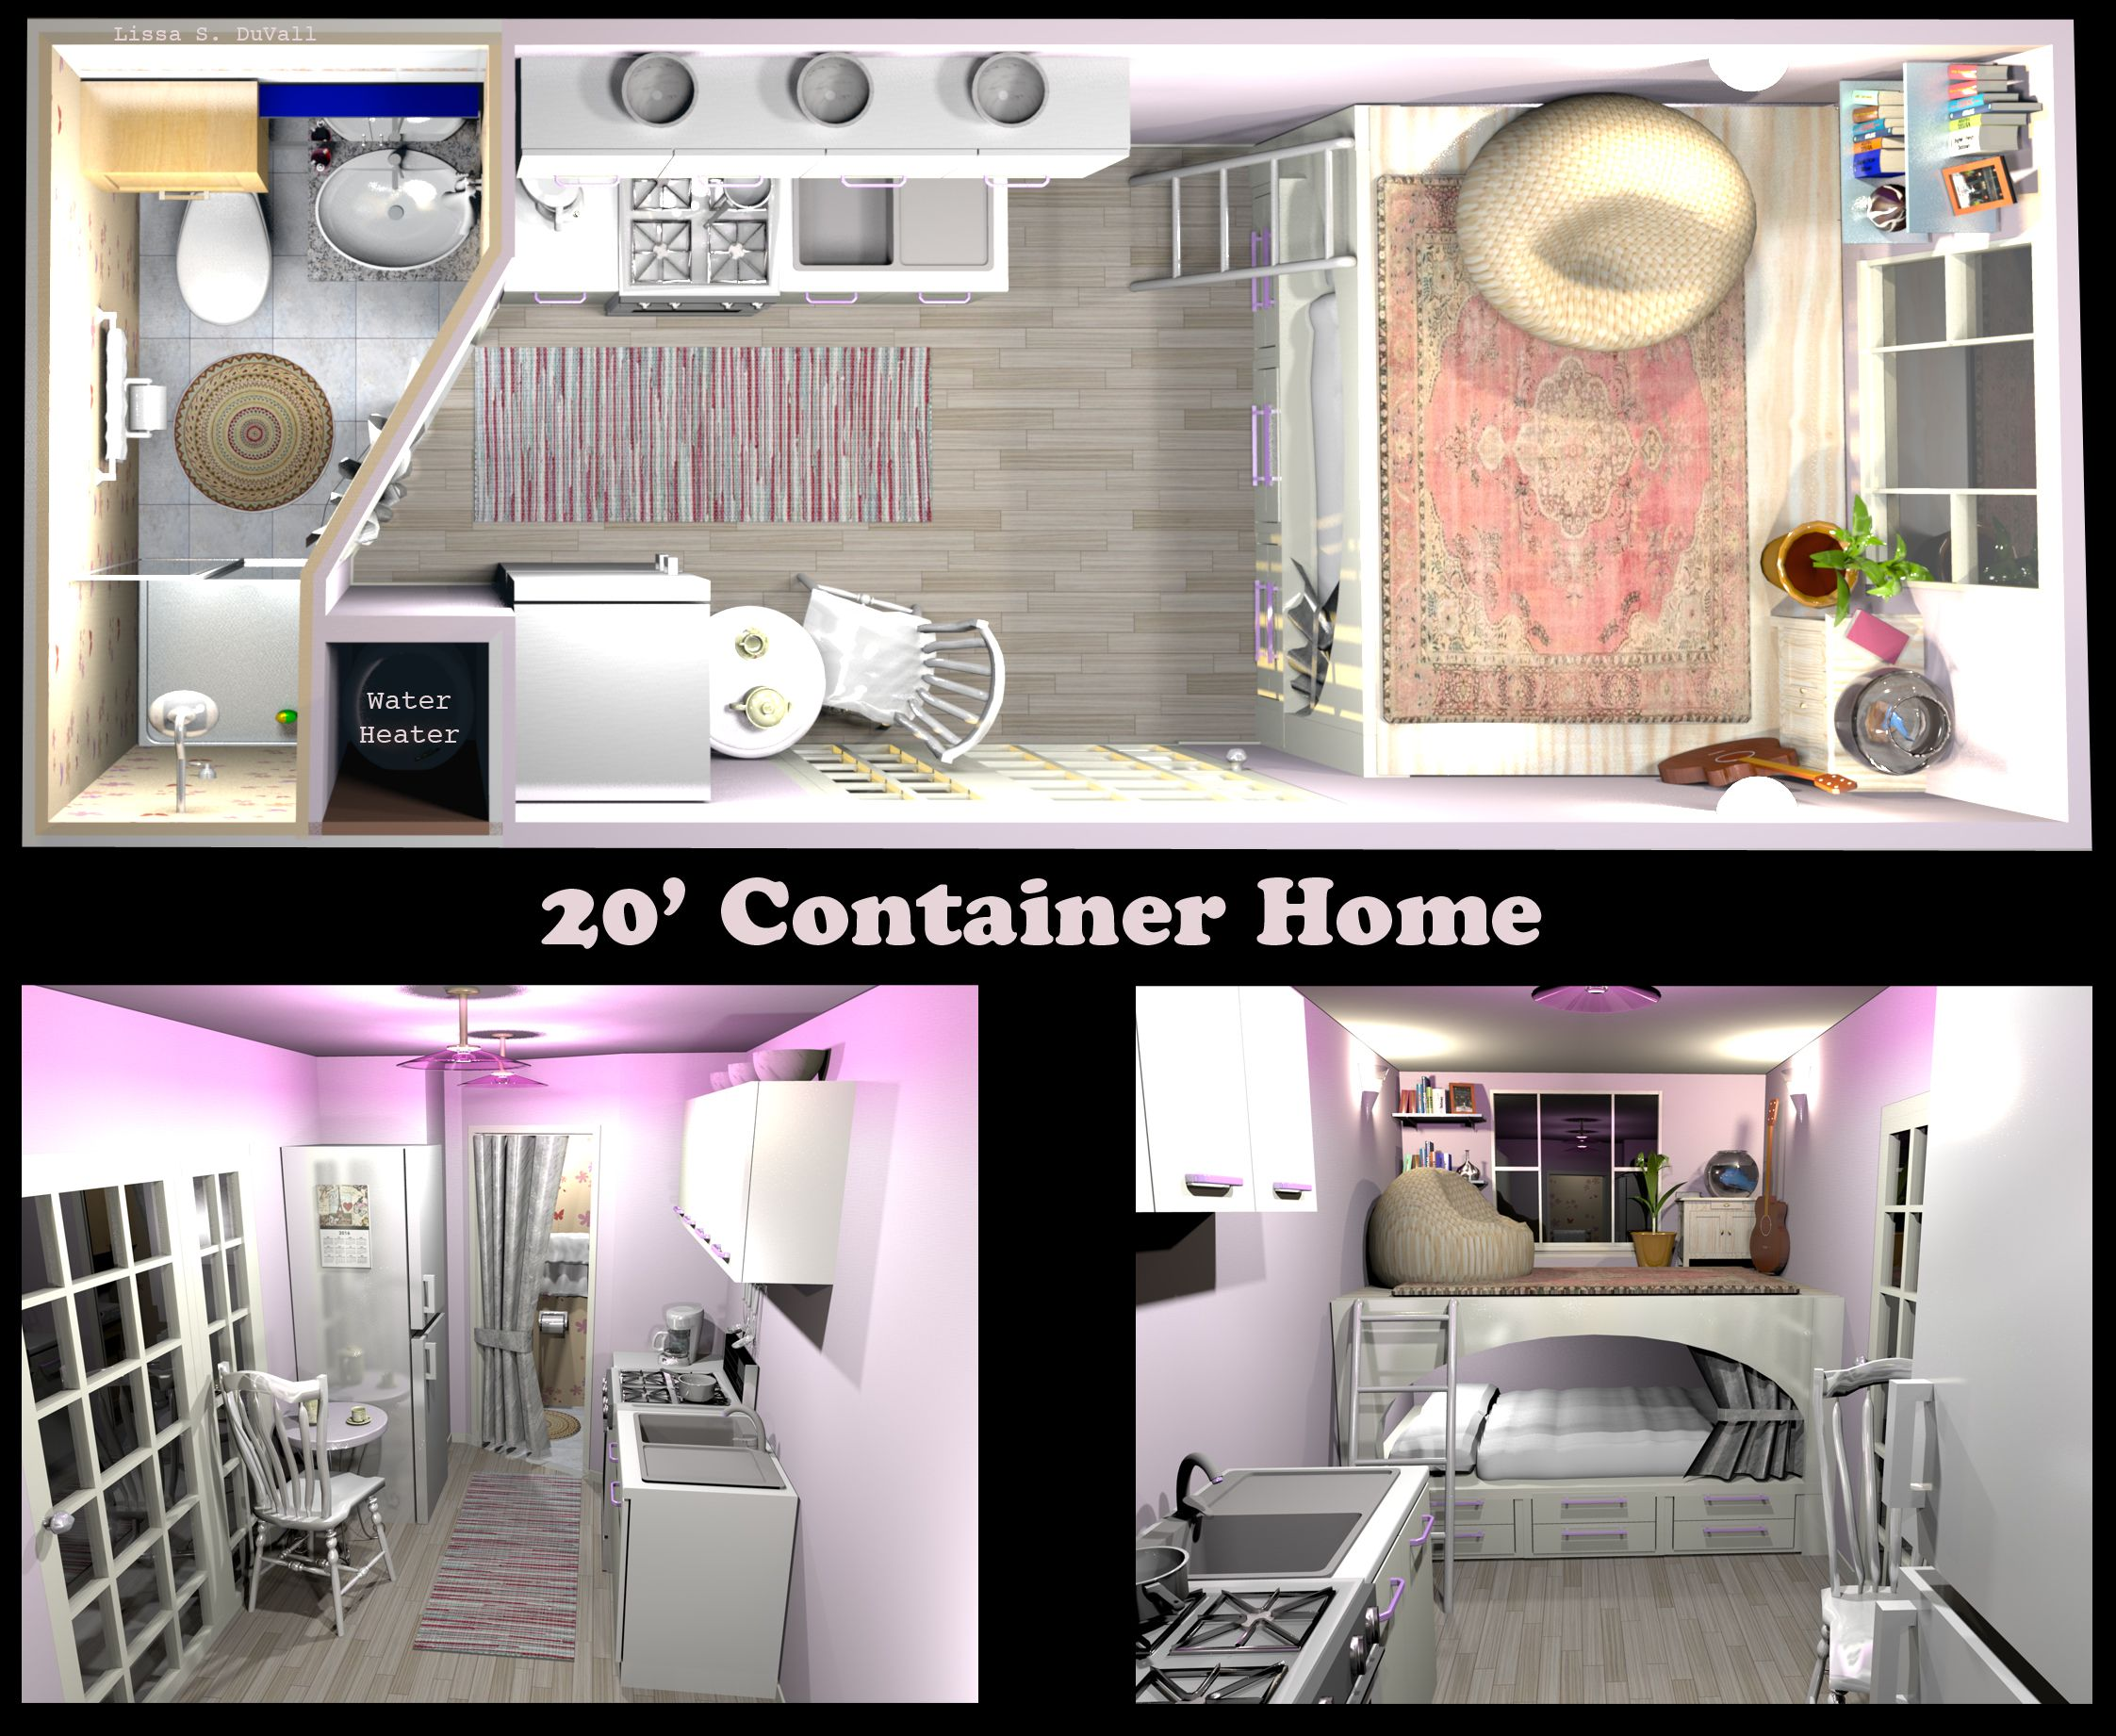 A Very Space Efficient Floor Plan For A Container Home Container Tiny House Tiny Home Freight Co Guest House Small Container House Building A Container Home